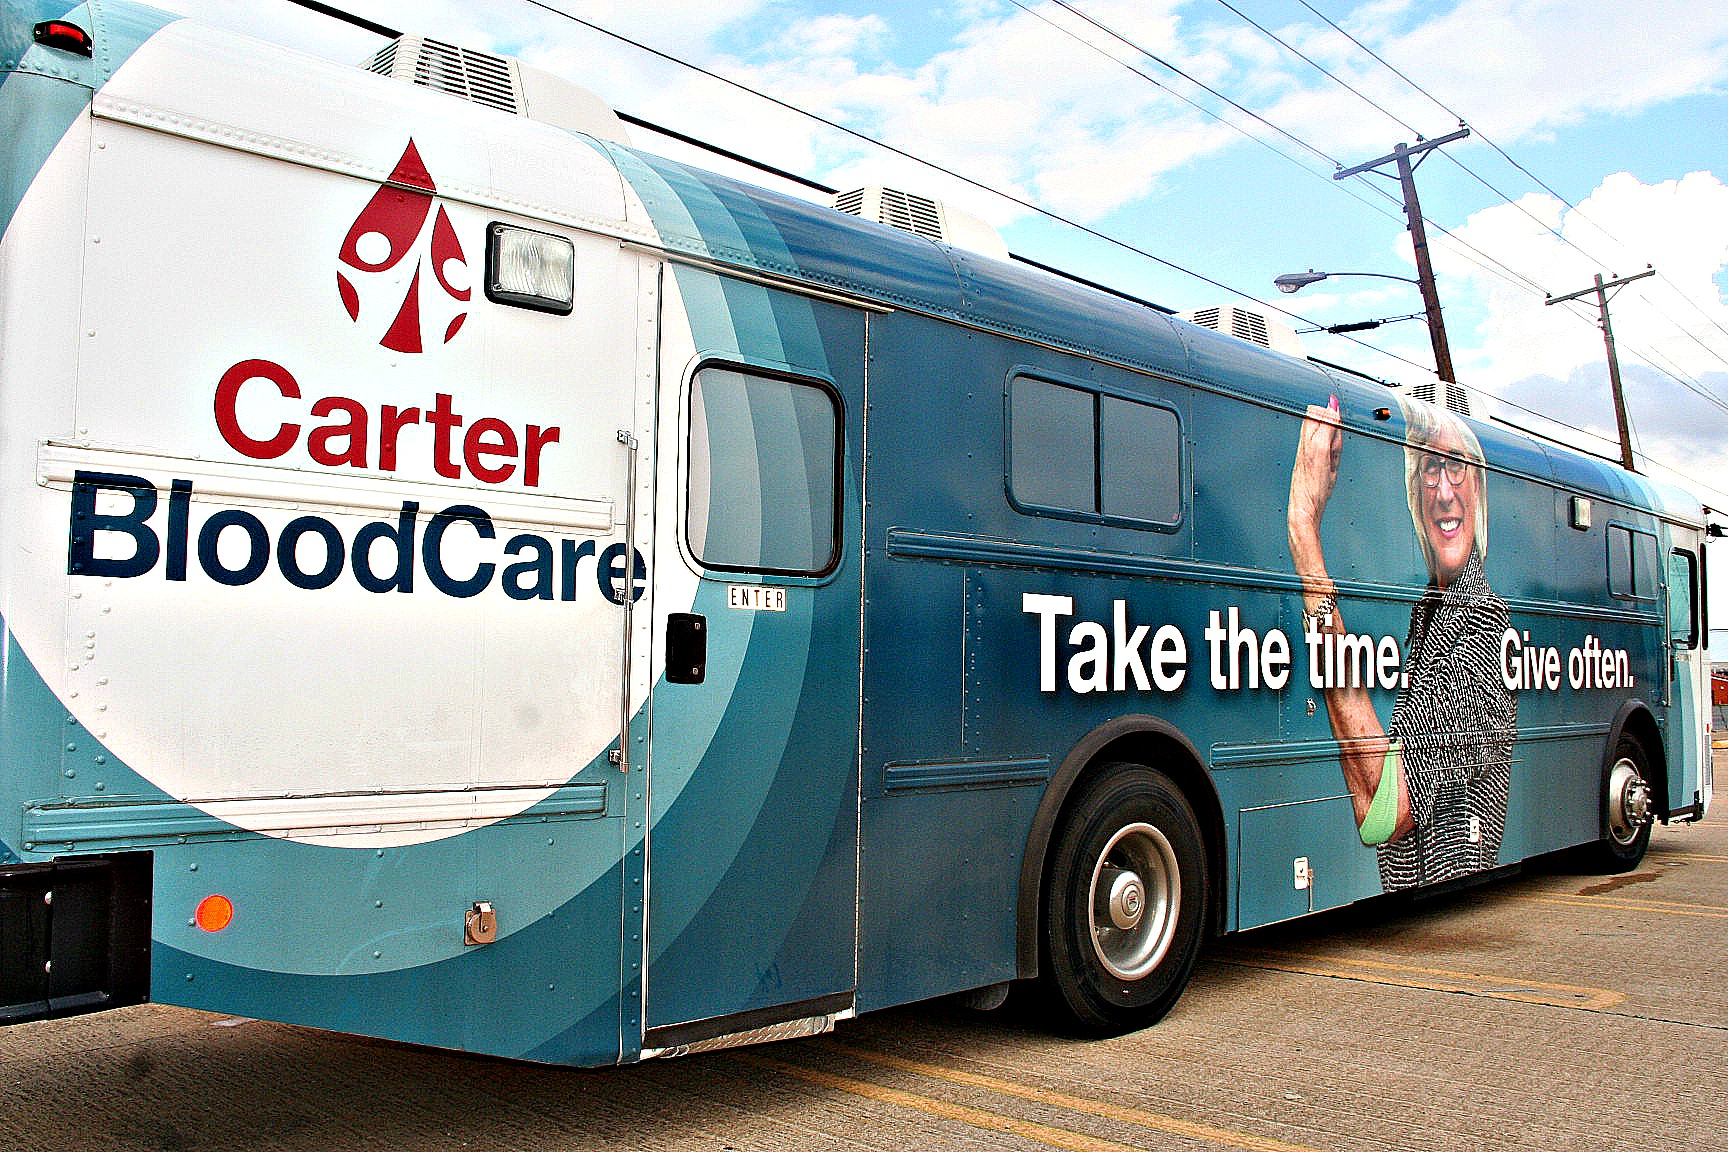 Carter BloodCare, community members partner to safeguard blood supply